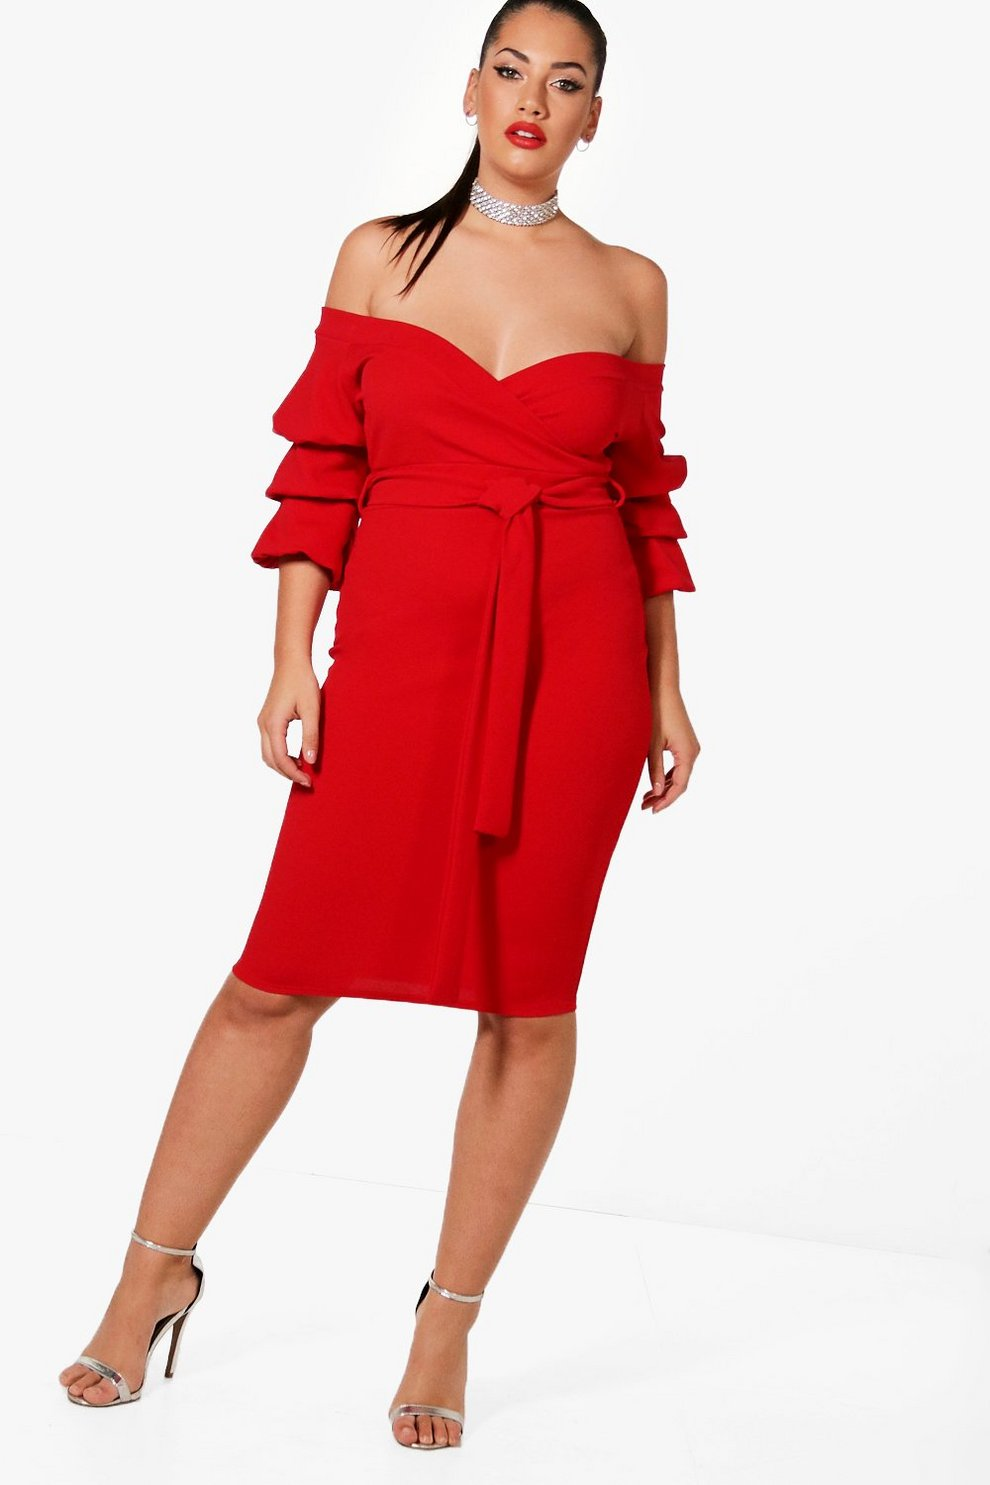 Boohoo Plus Off Shoulder Ruched Dress Discount Choice 9KwGy0sU